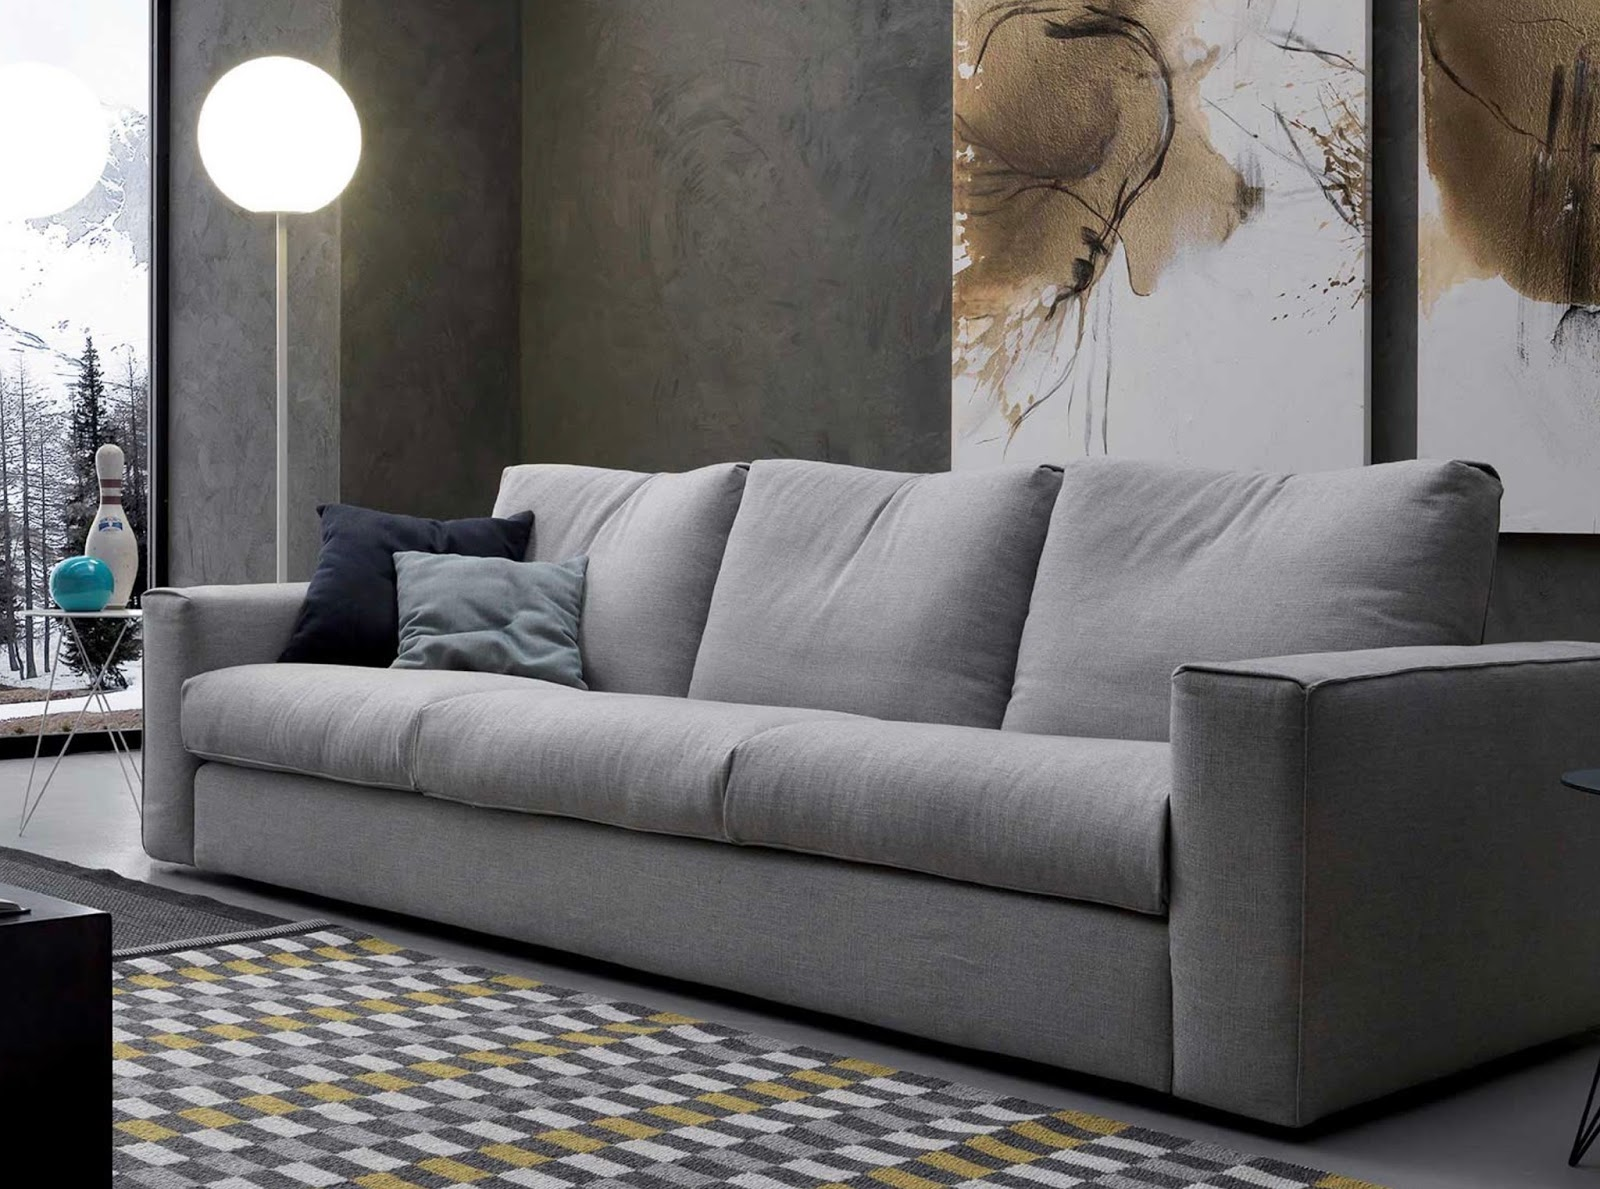 designer sofa furniture cardiff cleaning momentoitalia italian blog